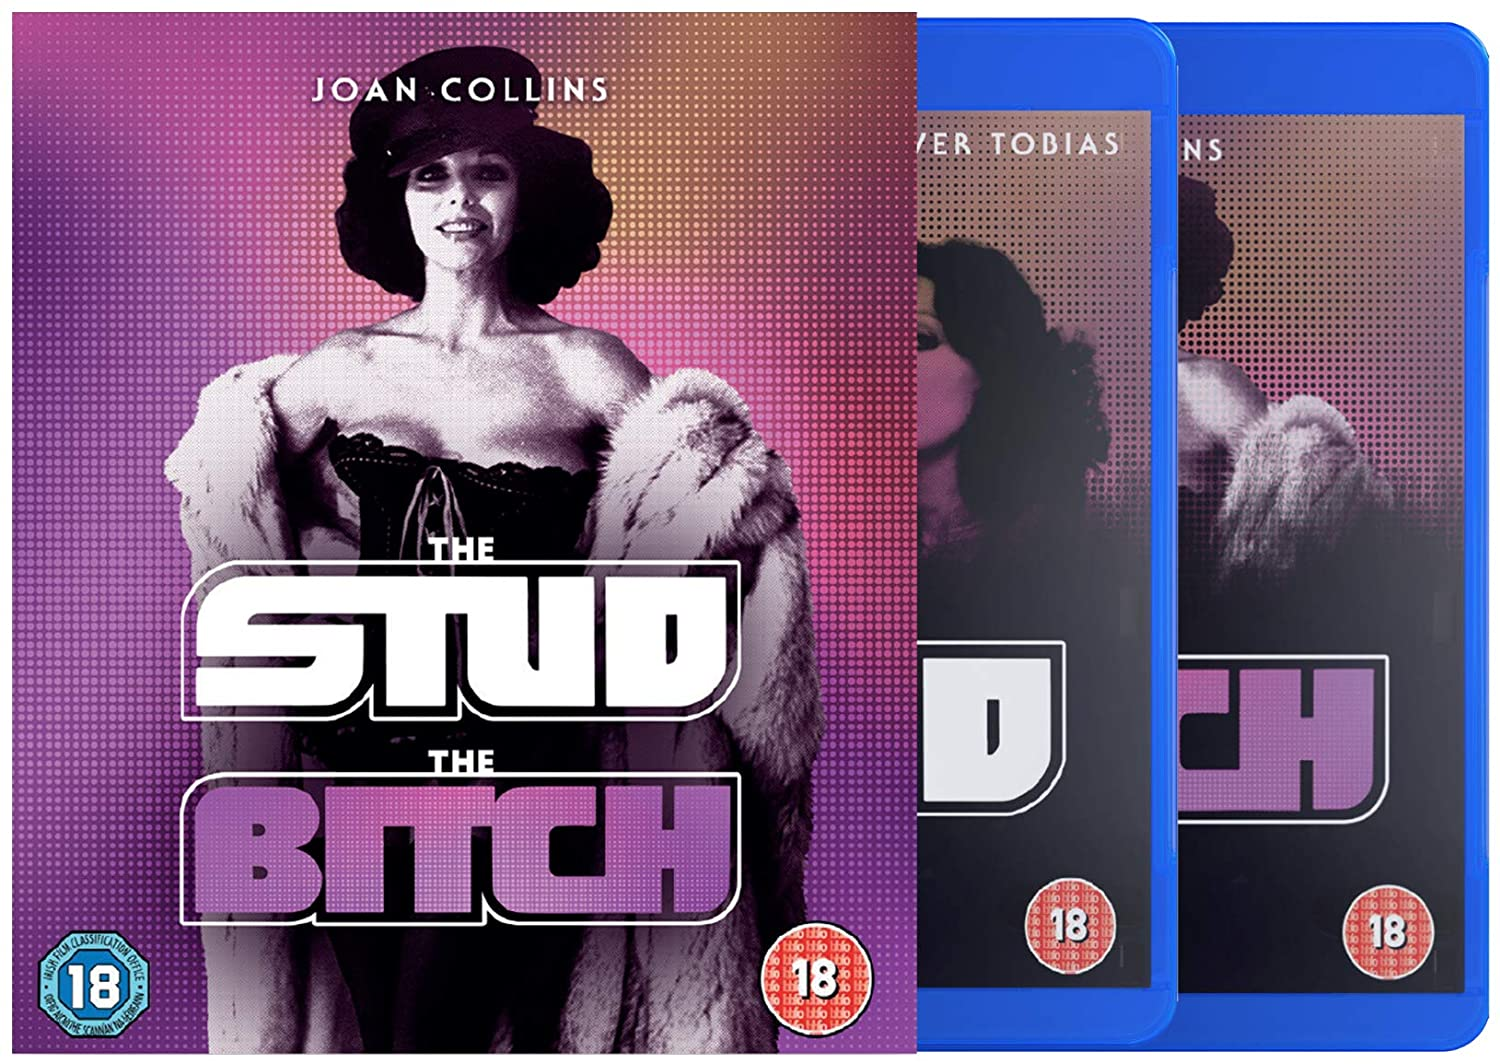 Omaha Mall The Challenge the lowest price of Japan ☆ Stud Blu-ray Bitch